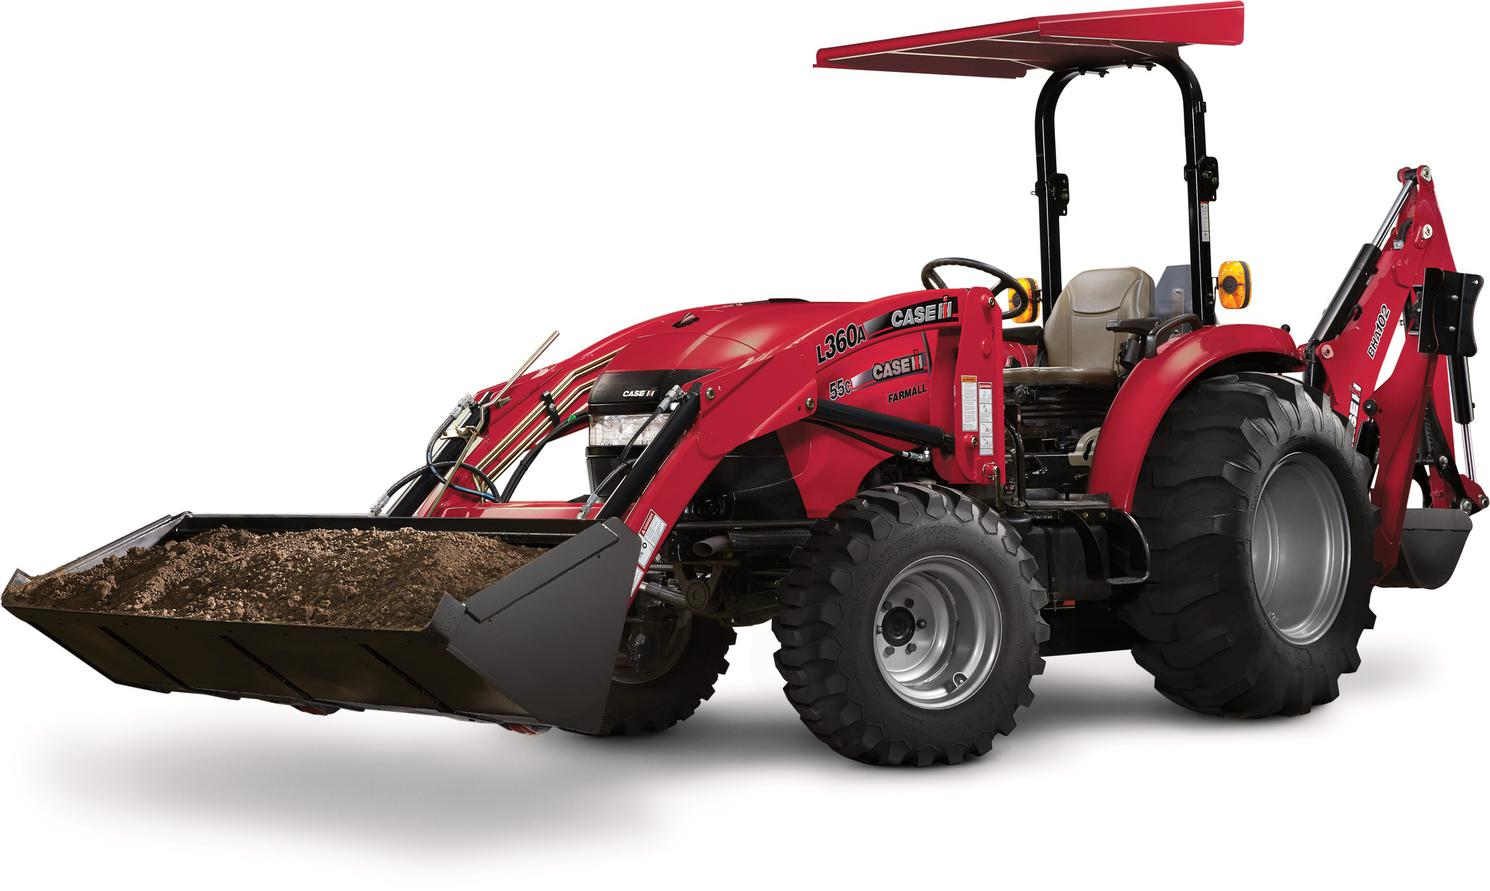 Case IH Backhoes